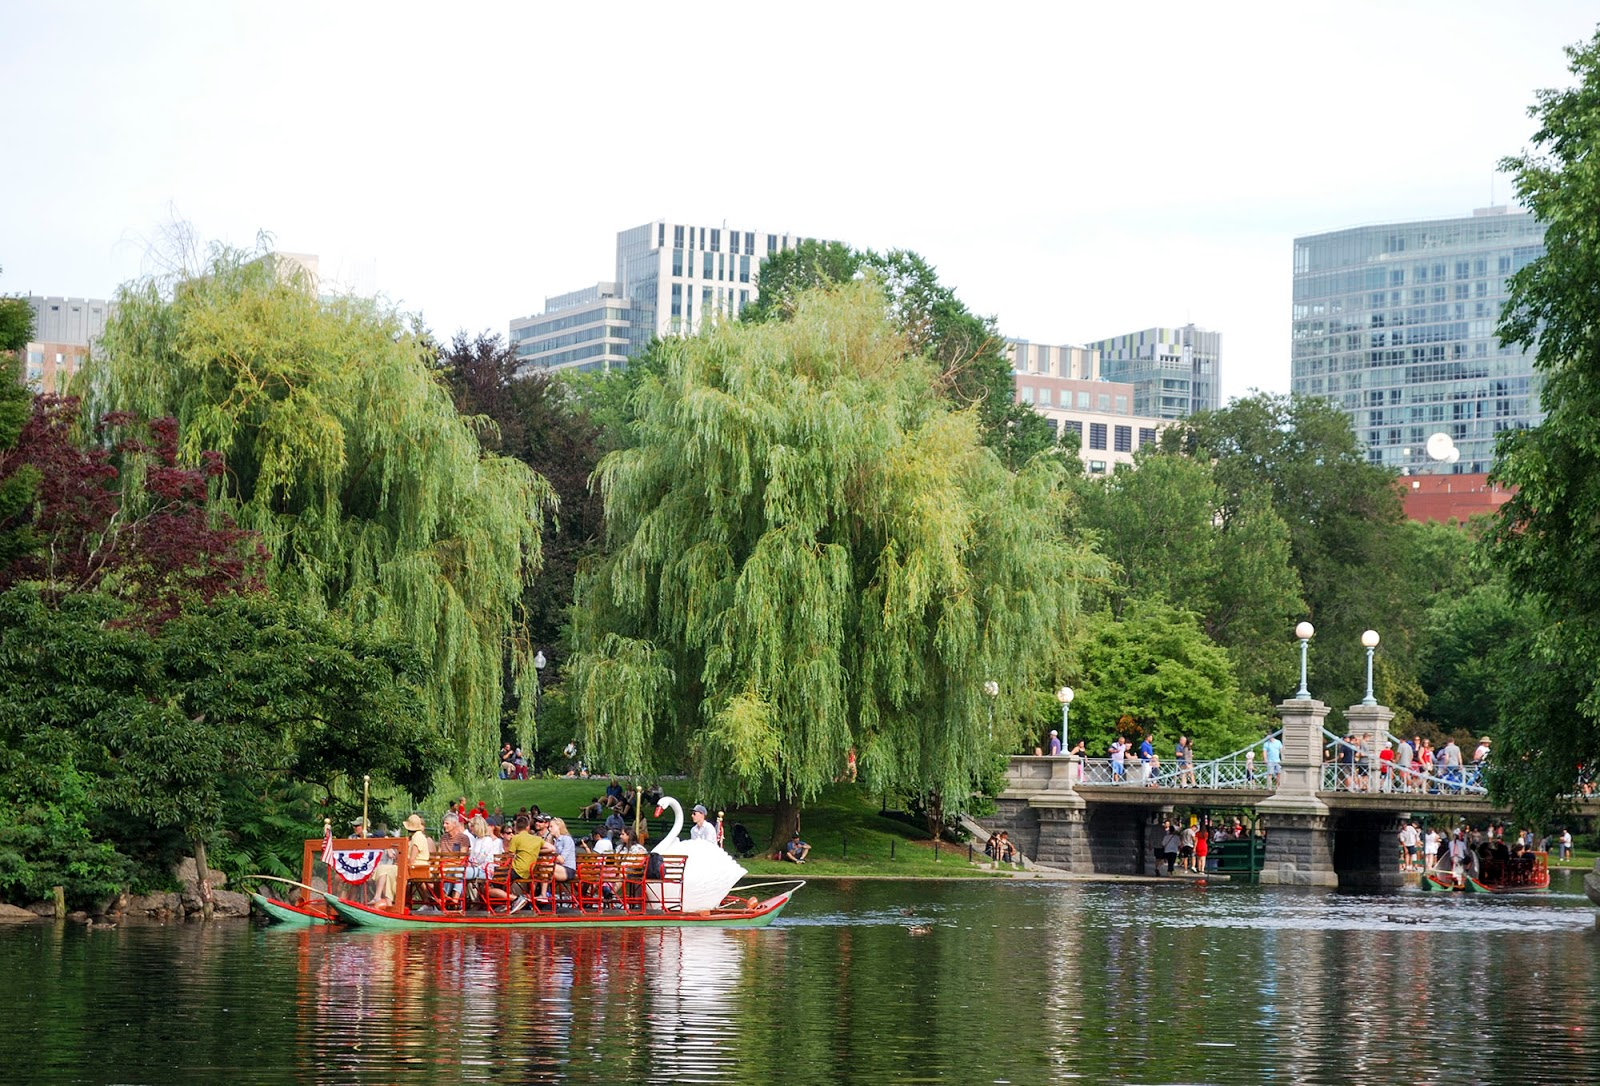 swan boat boston public garden itinerary plan guide tourism usa america park east coast